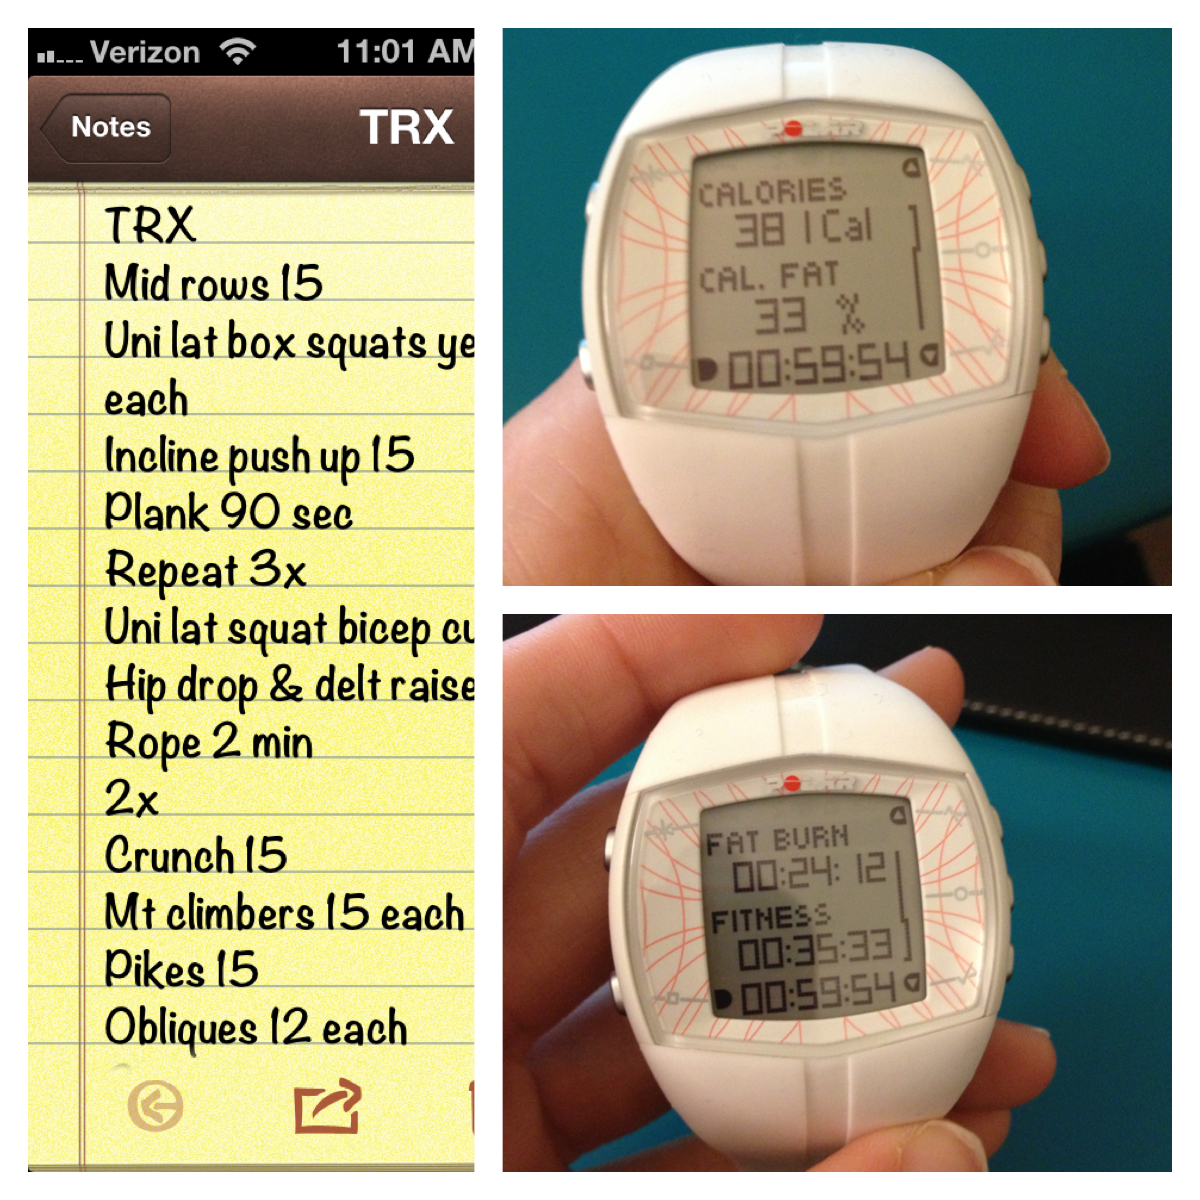 TRX; cardio bursts and only a few calories burned